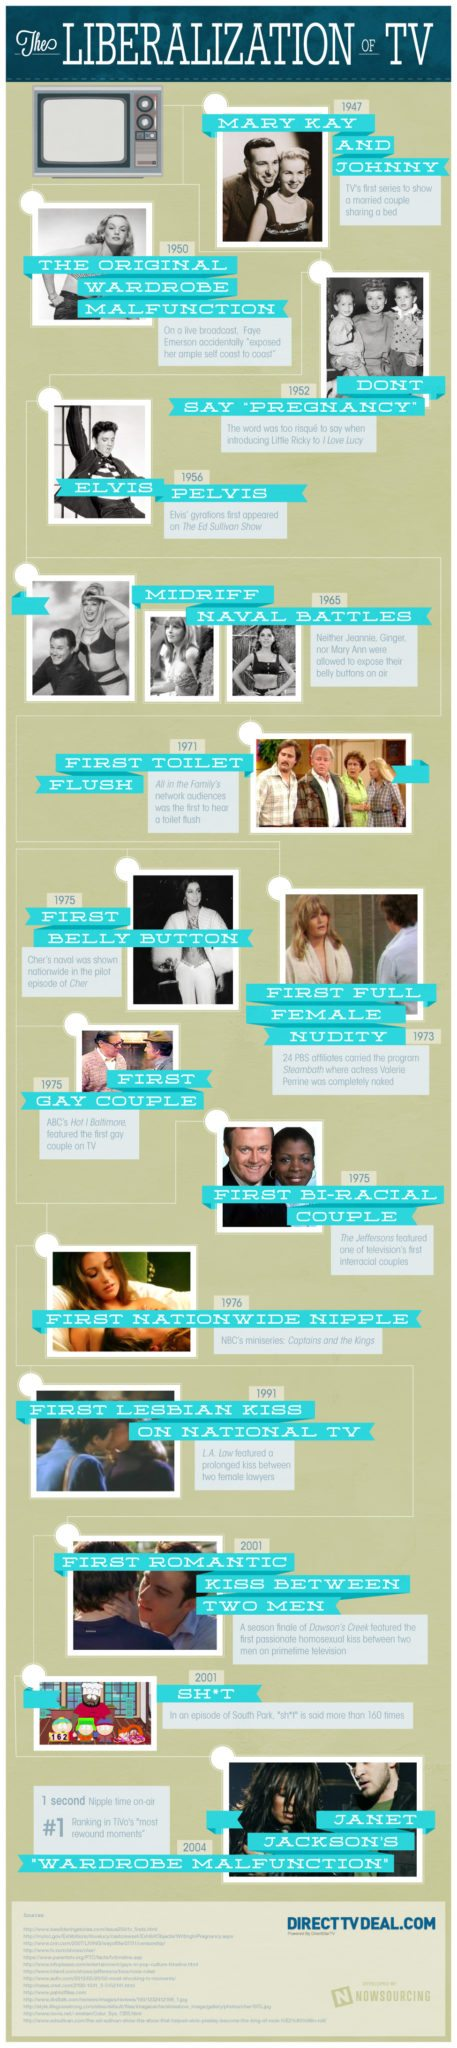 The Liberalization of TV [Infographic]